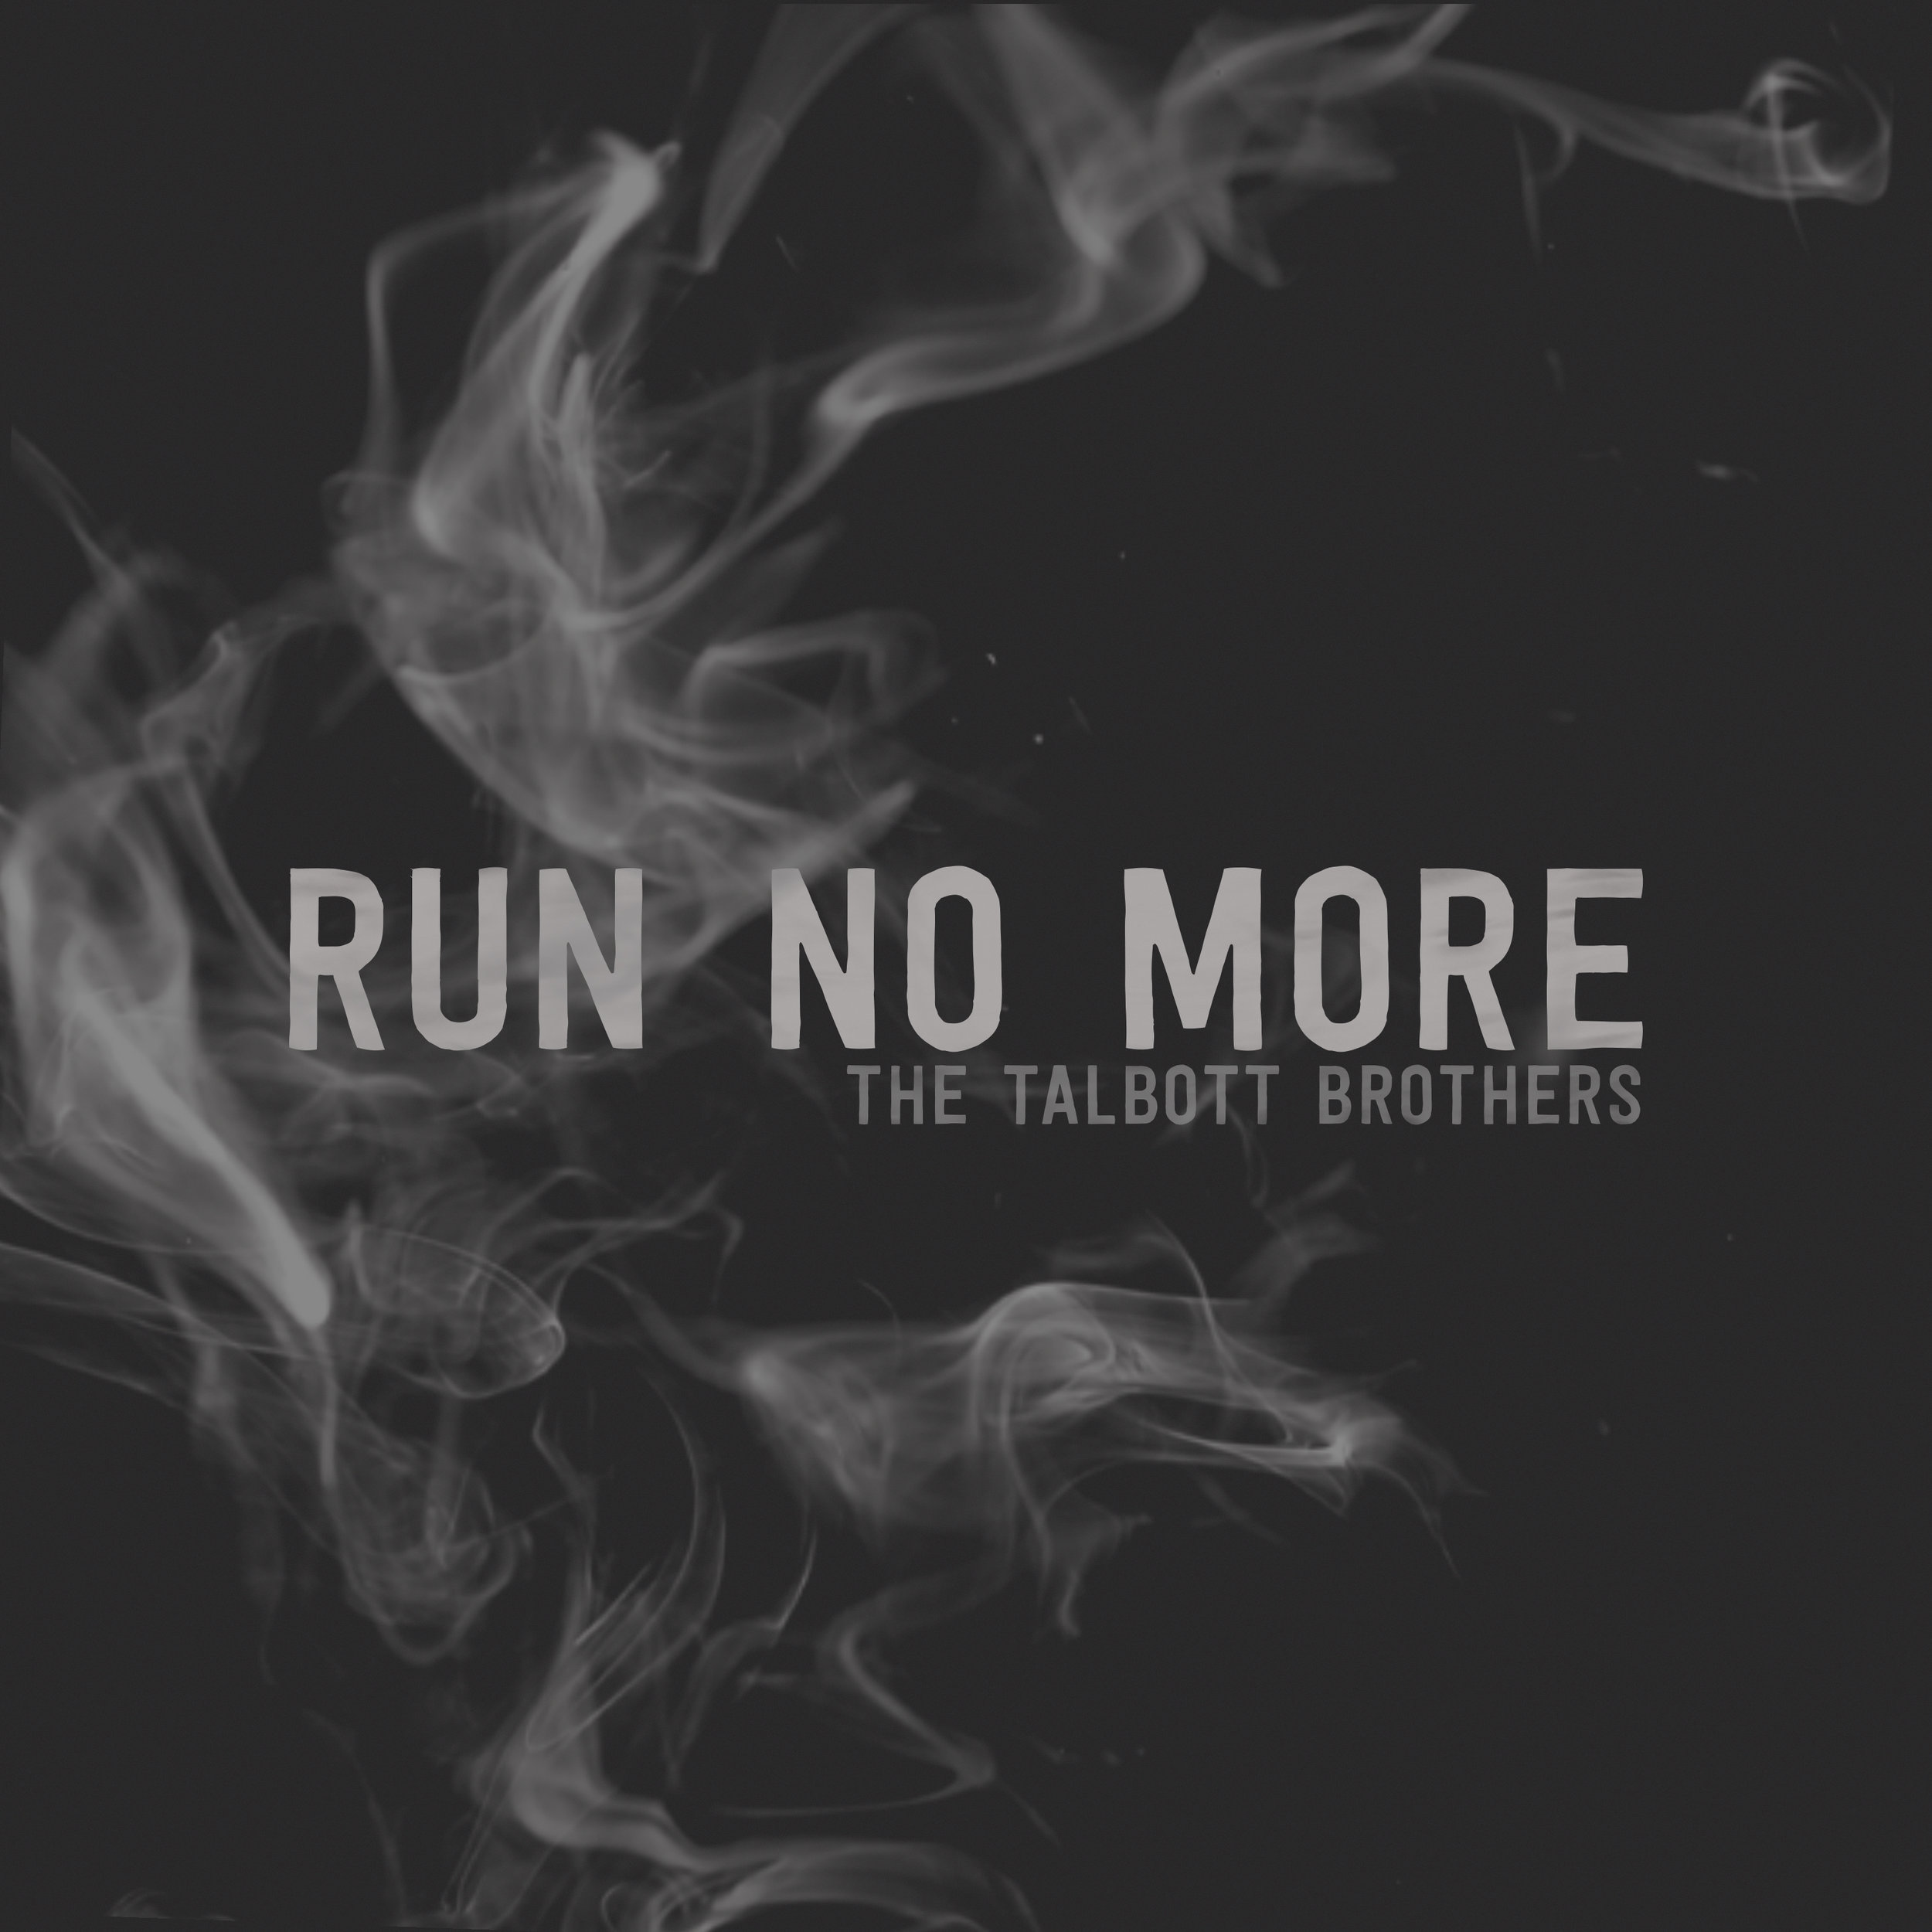 Run No More - The Talbott Brothers